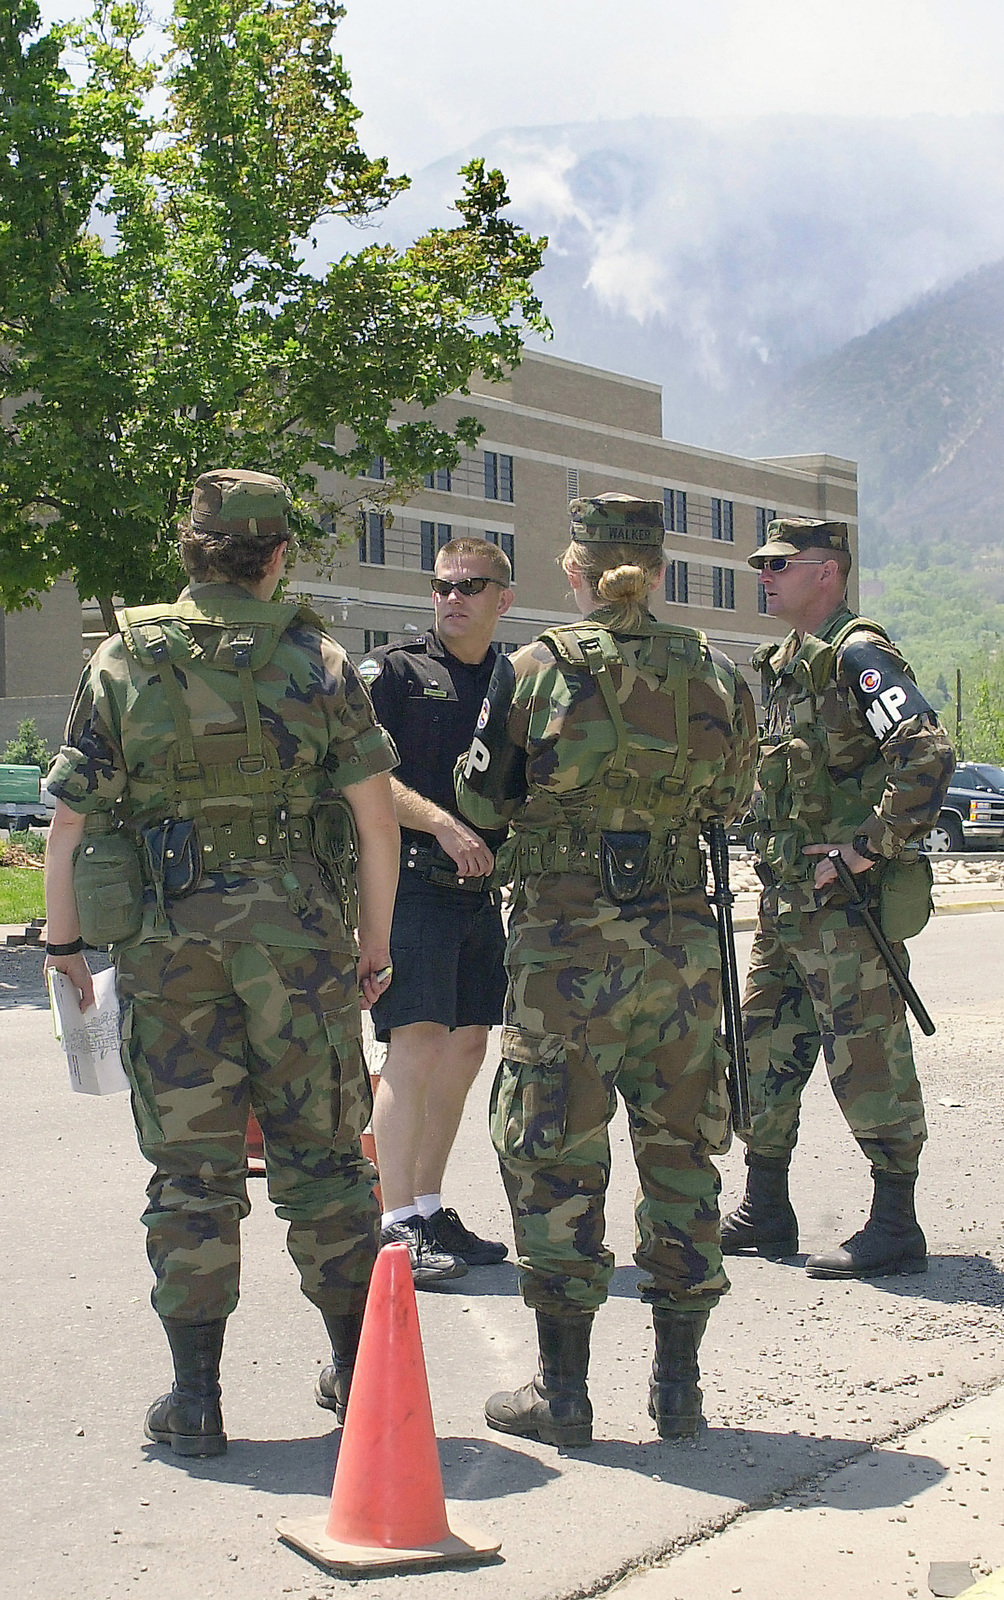 Members of the 220th Military Police (MP) Company, Colorado Army National Guard (COARNG), assist the Glenwood Springs Police Department with security access control during the Coal Seam Fires. The Coal Seam Fire started sometime in the mid-1970s as an underground fire burned along a rich vein of coal. Occassionally the fire breaks through to the surface. At this time it had burned 7,300 acres, damaged an estimated 40 structures, and caused the evacuation of 2,000 residents